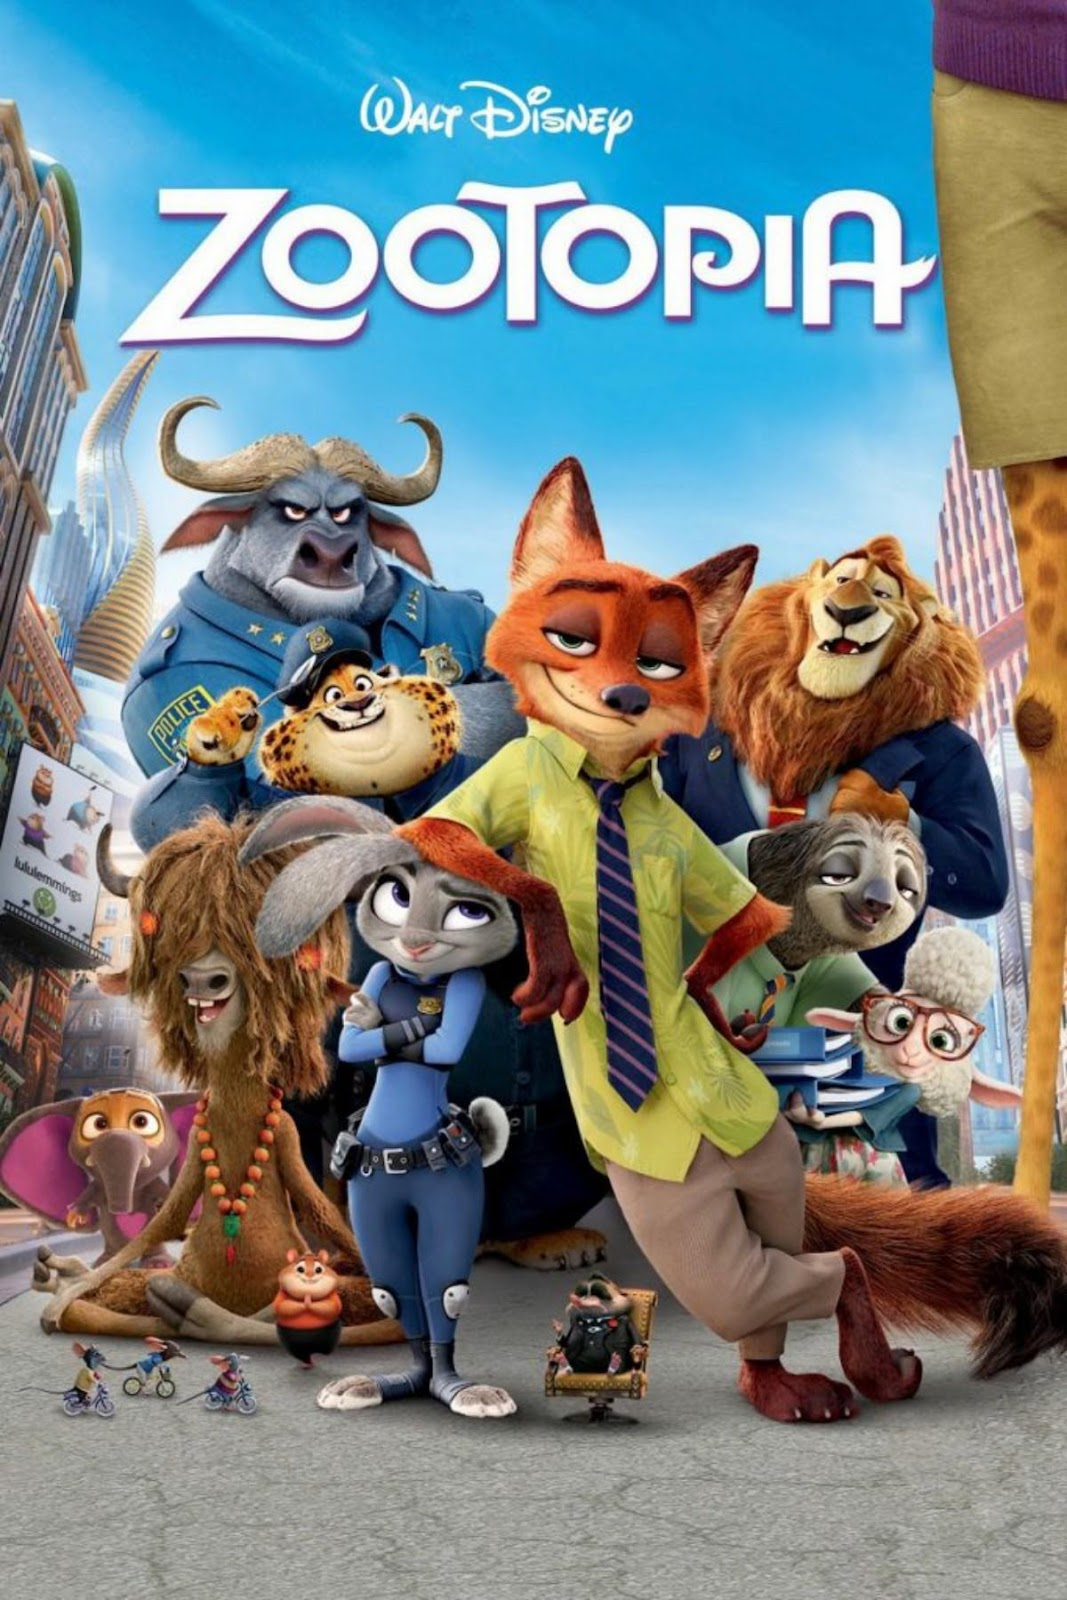 Zootopia – Where every animal lives in peace